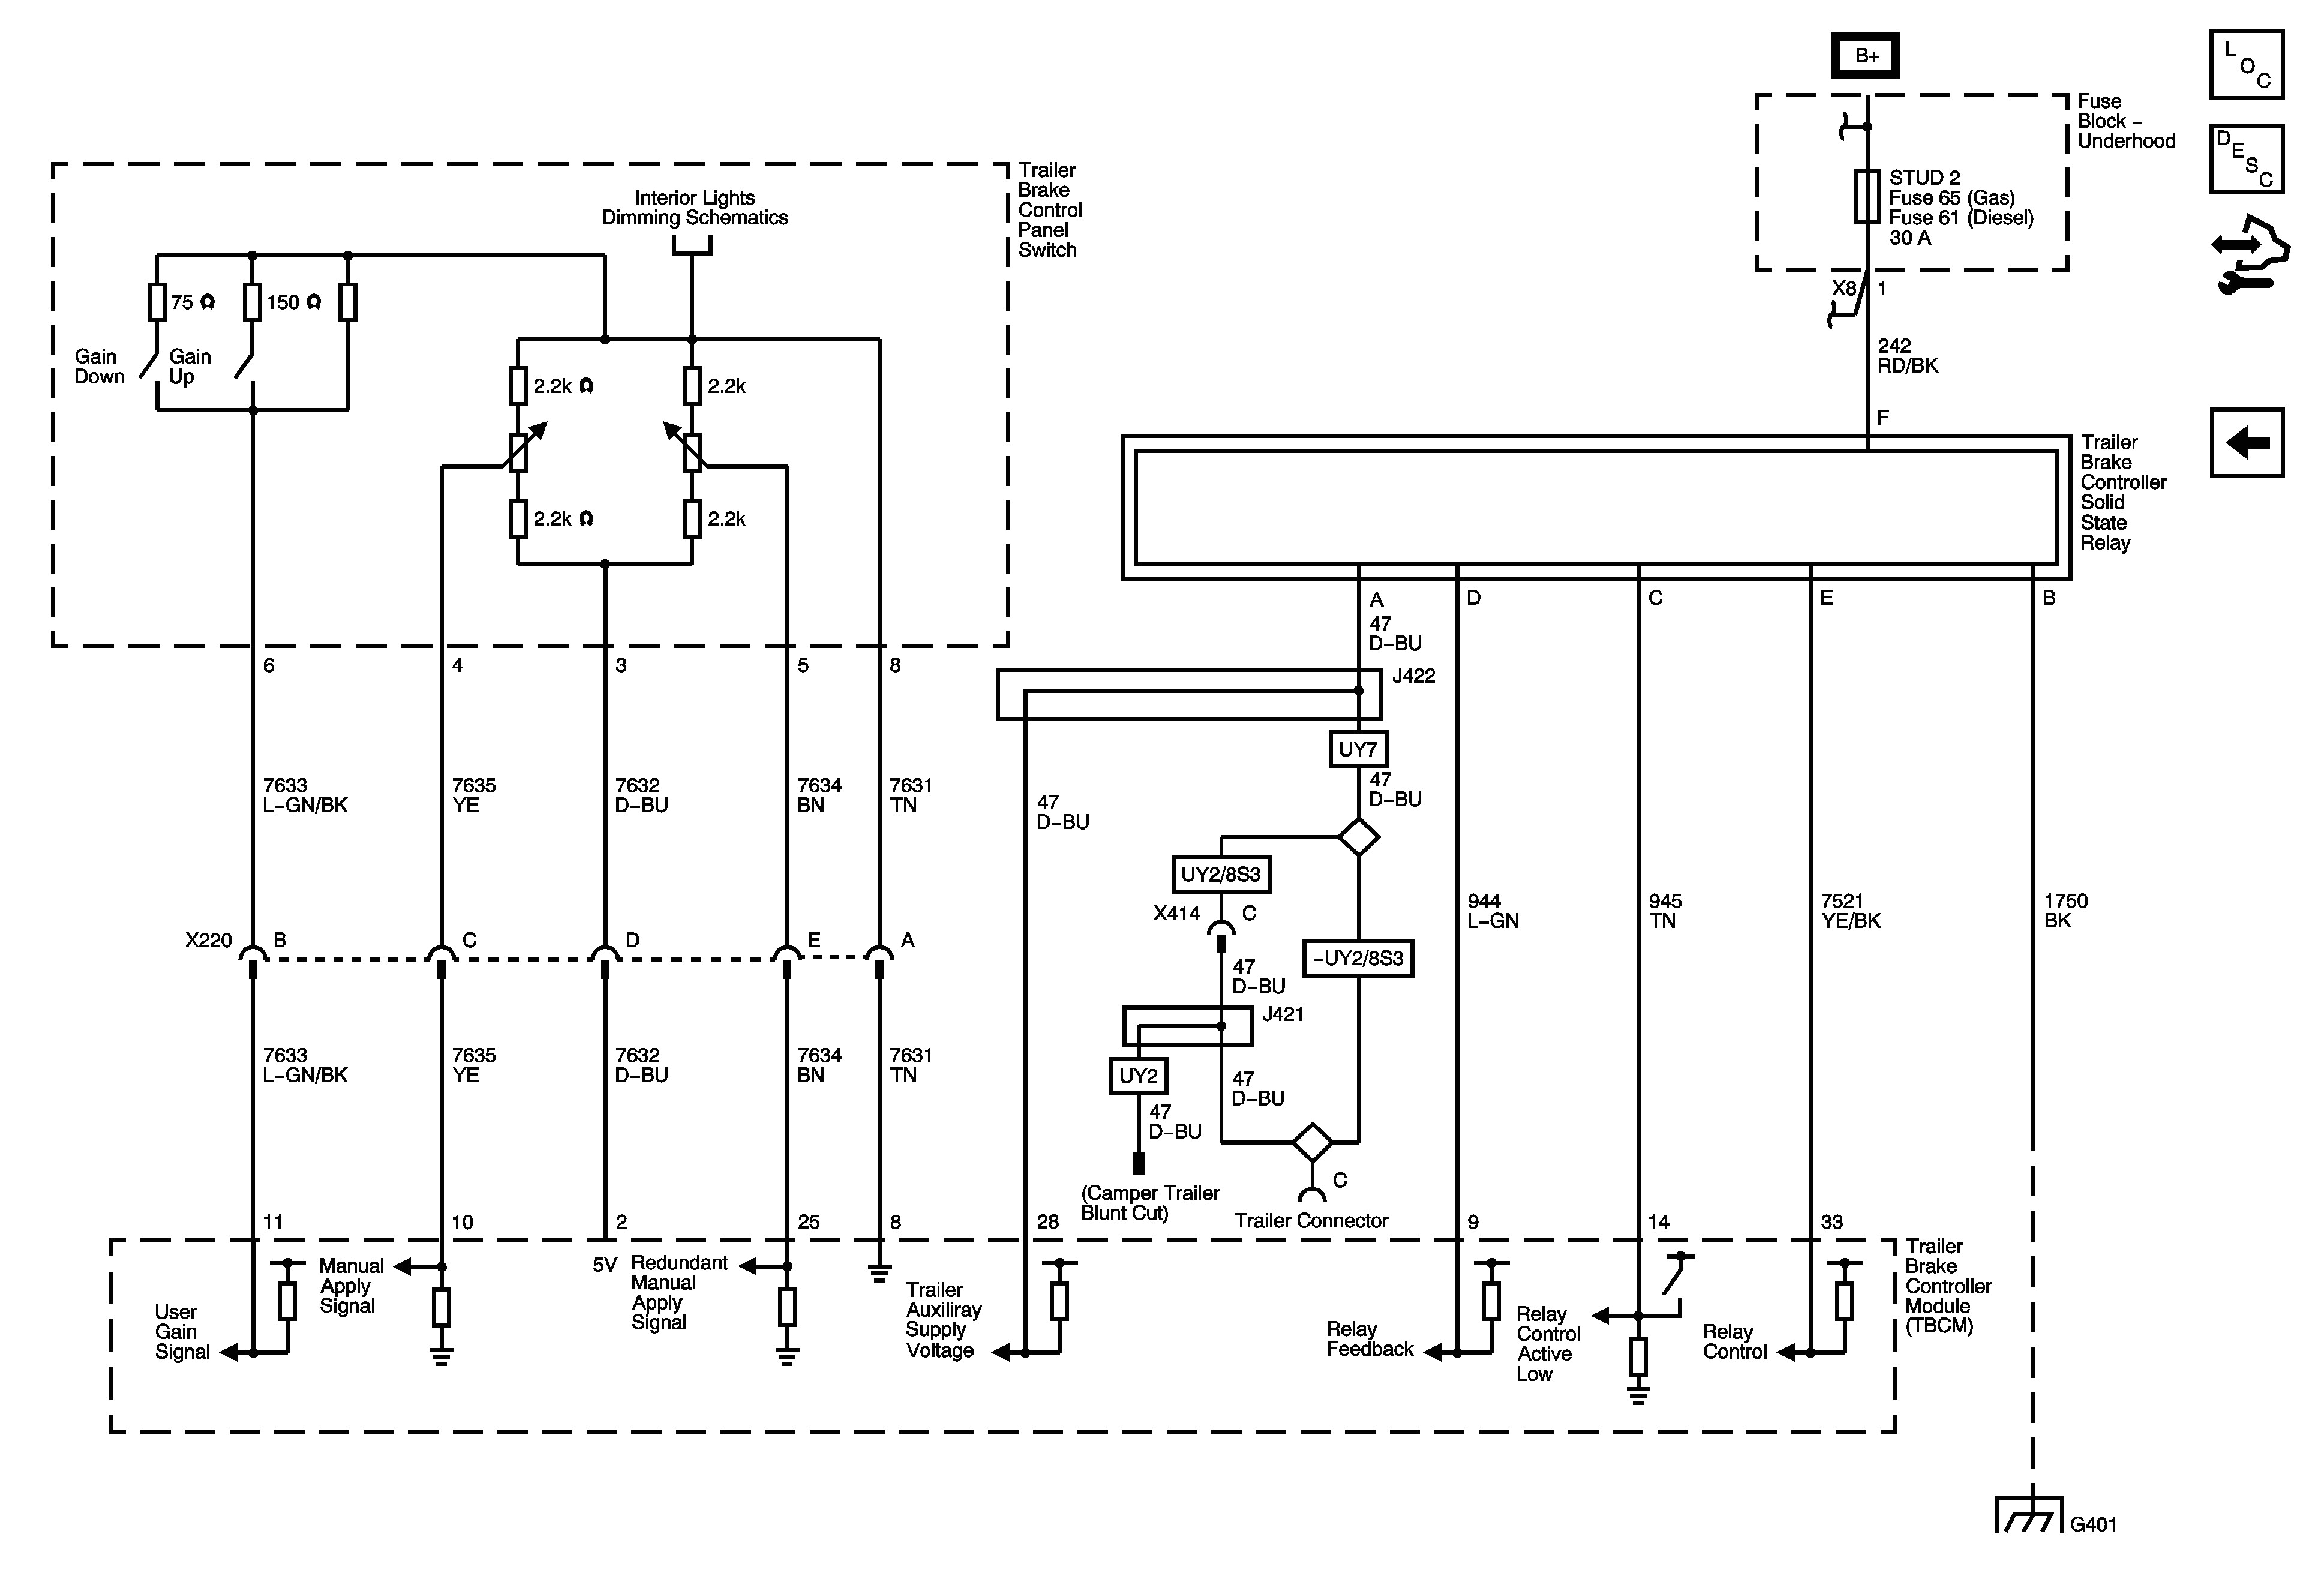 pole mounted controller wiring diagram advance wiring diagram pole mounted controller wiring diagram